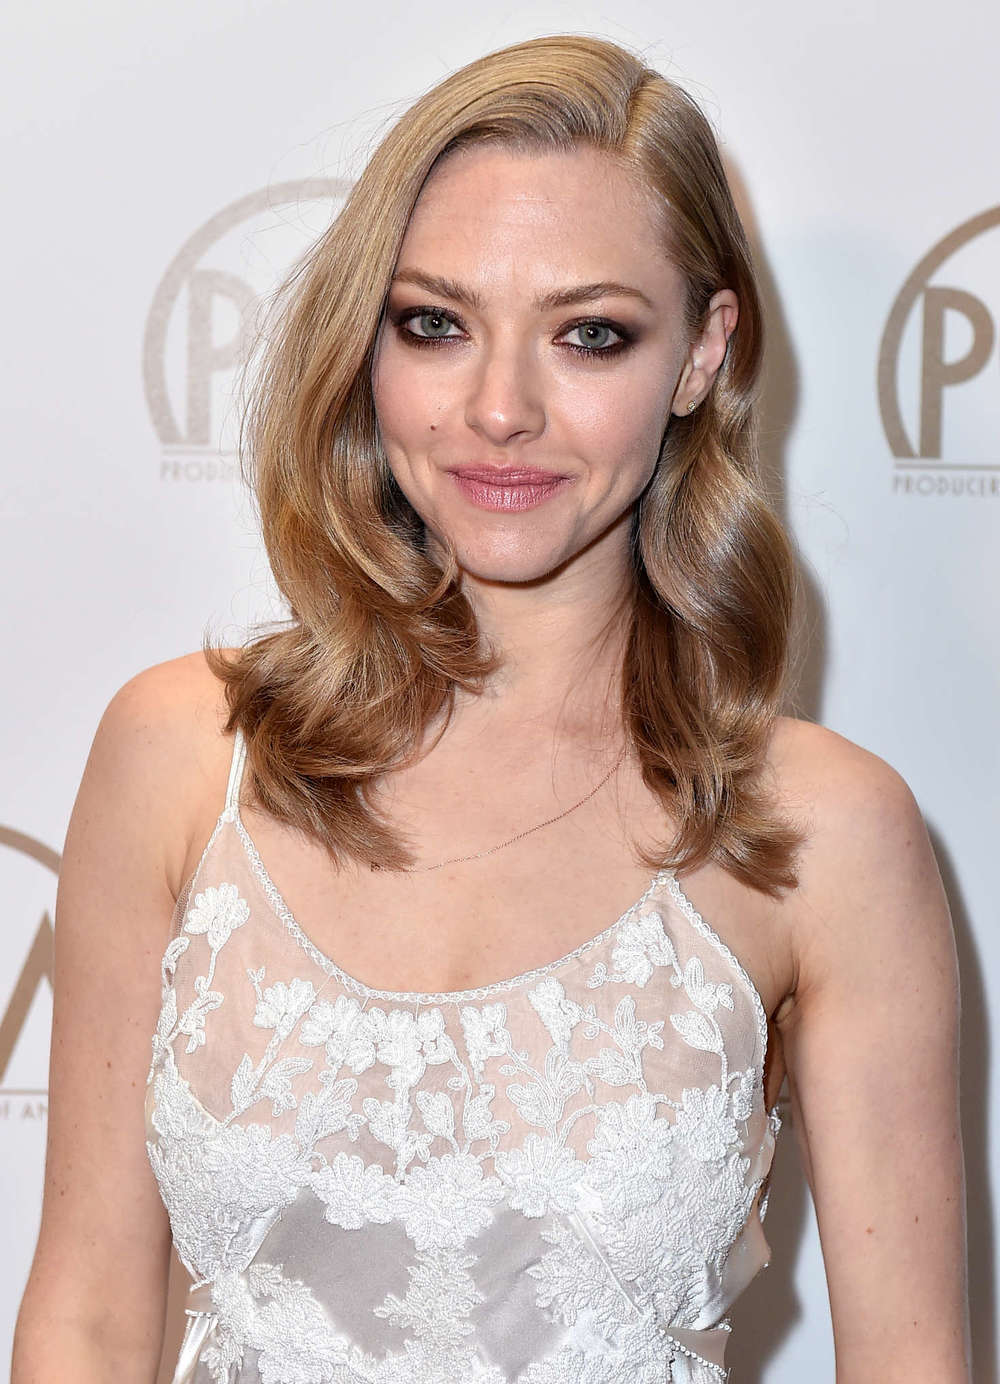 20160123_ASEYFRIED_PGAAWARDS_ESW_JC_MB_01.jpg